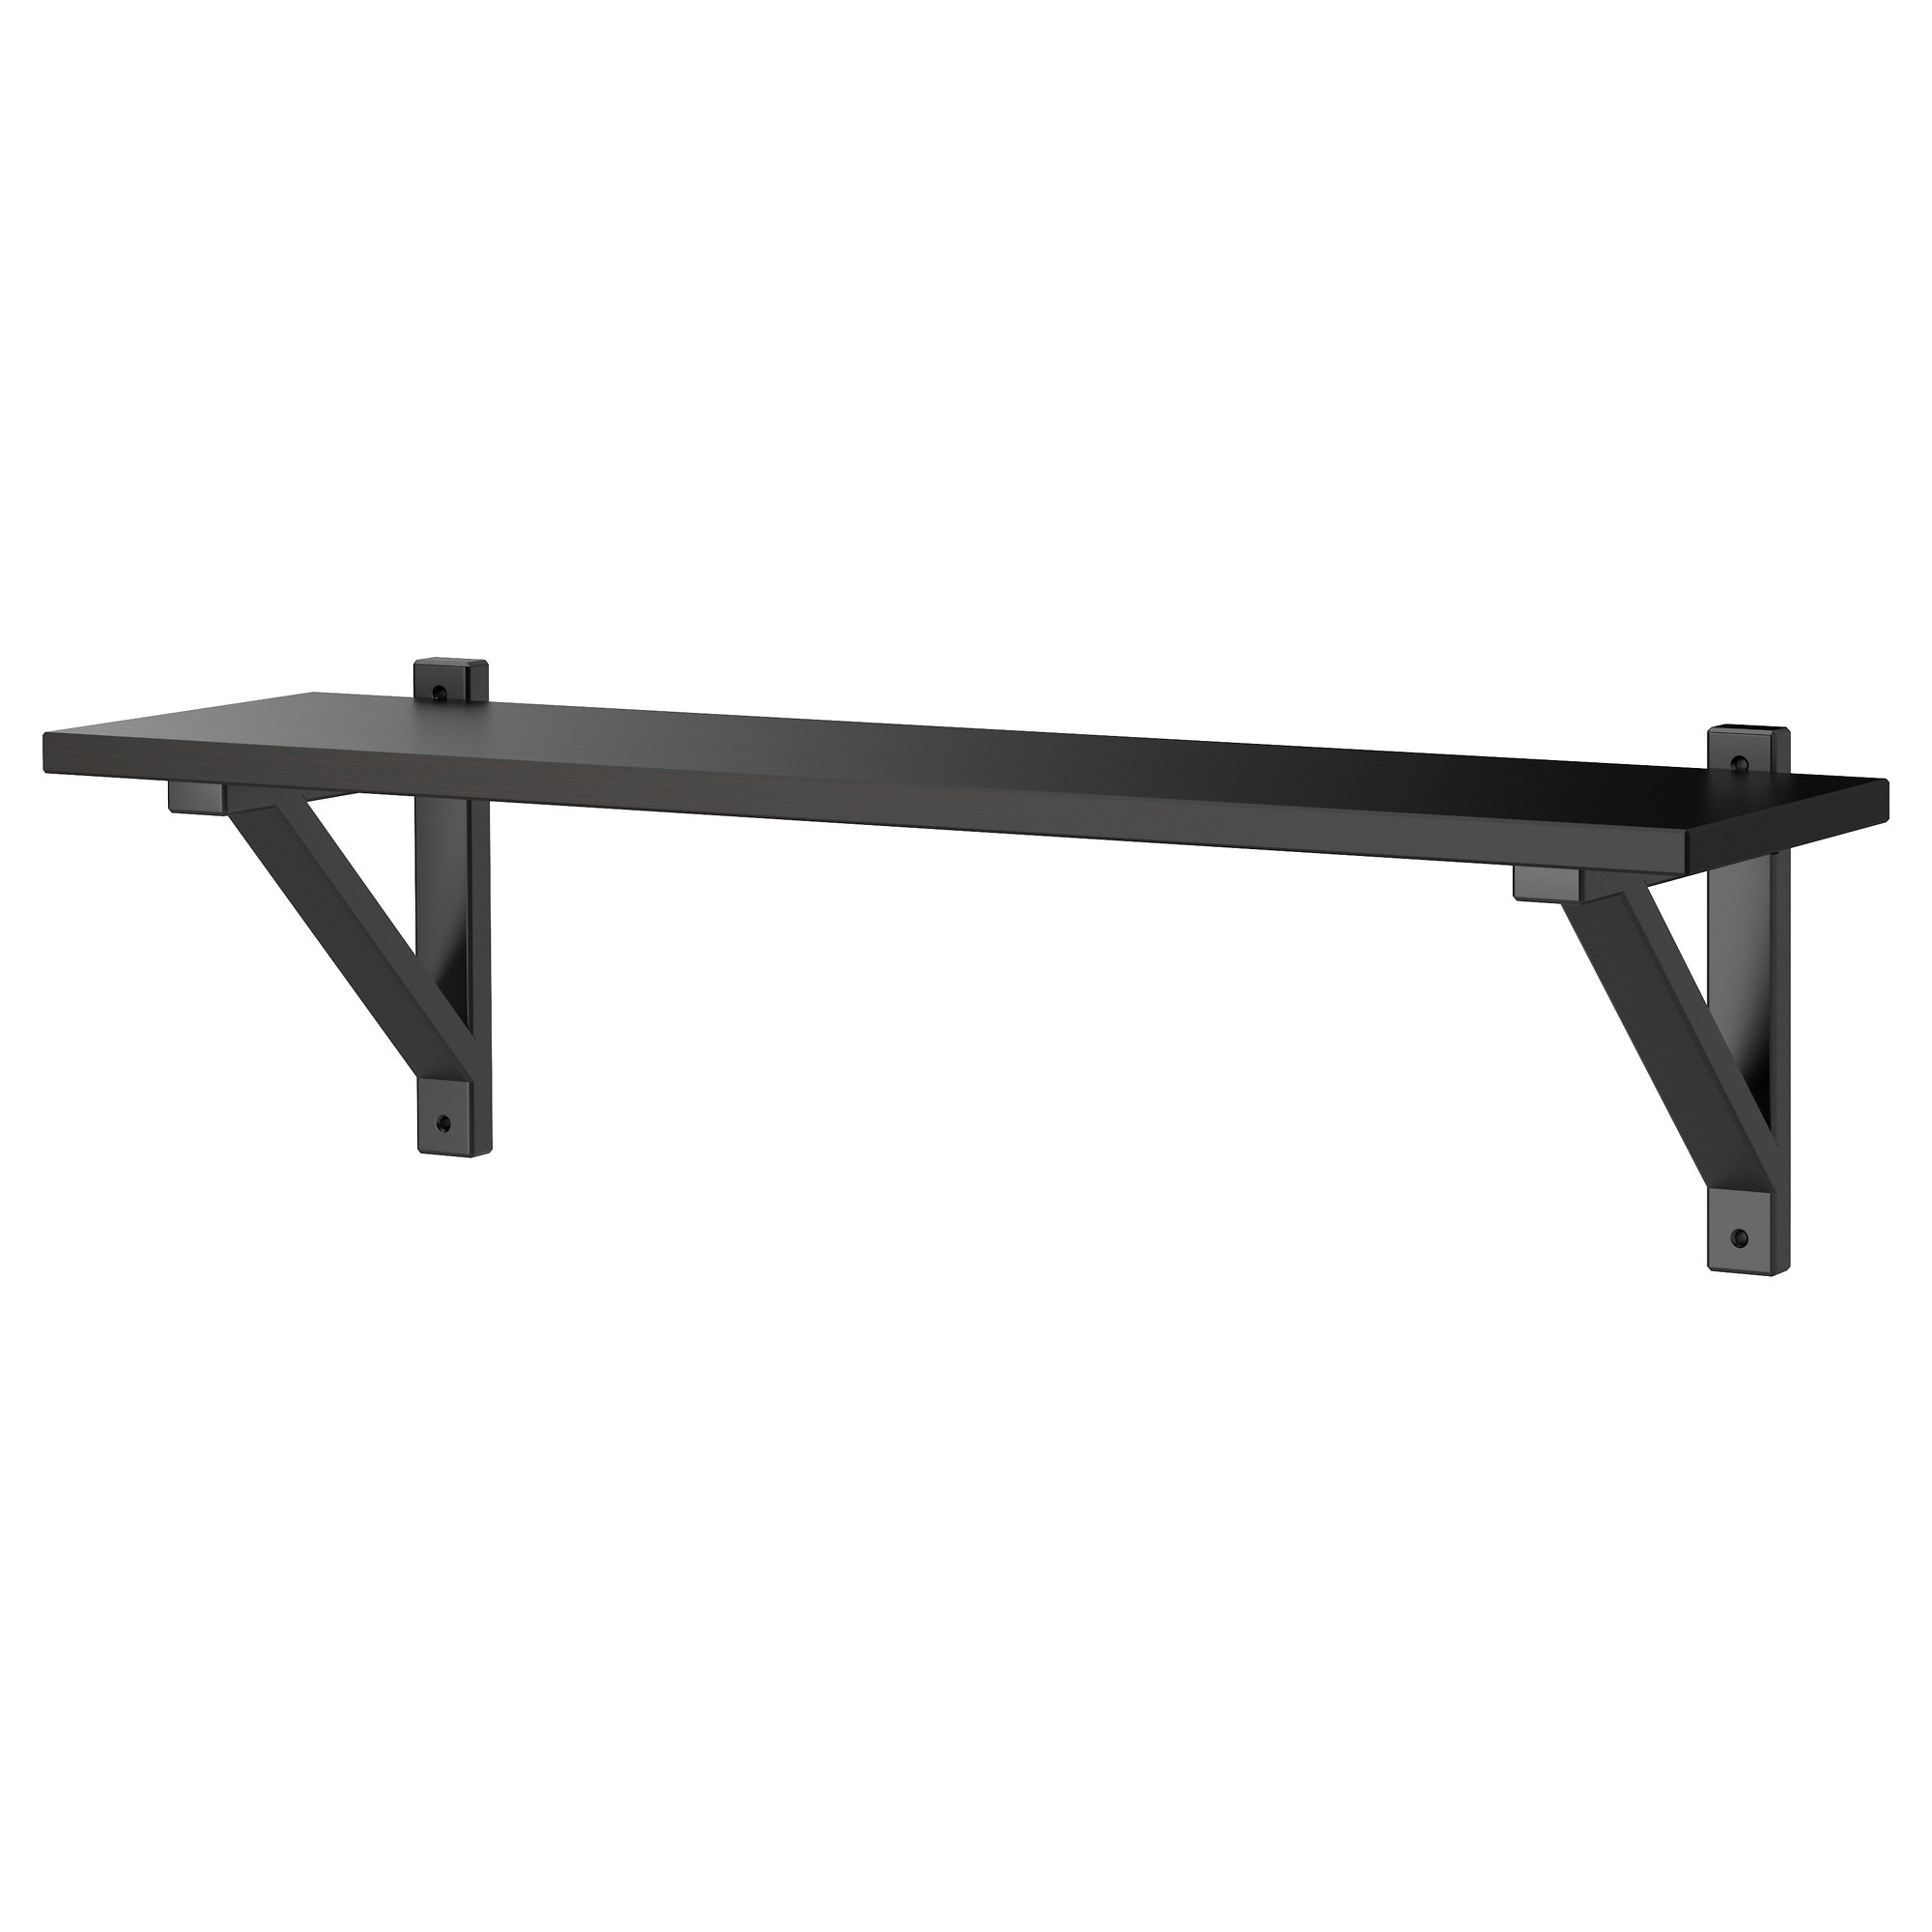 Wall shelves shelf brackets ikea ekby hemnes ekby valter wall shelf black brown black width 31 amipublicfo Gallery